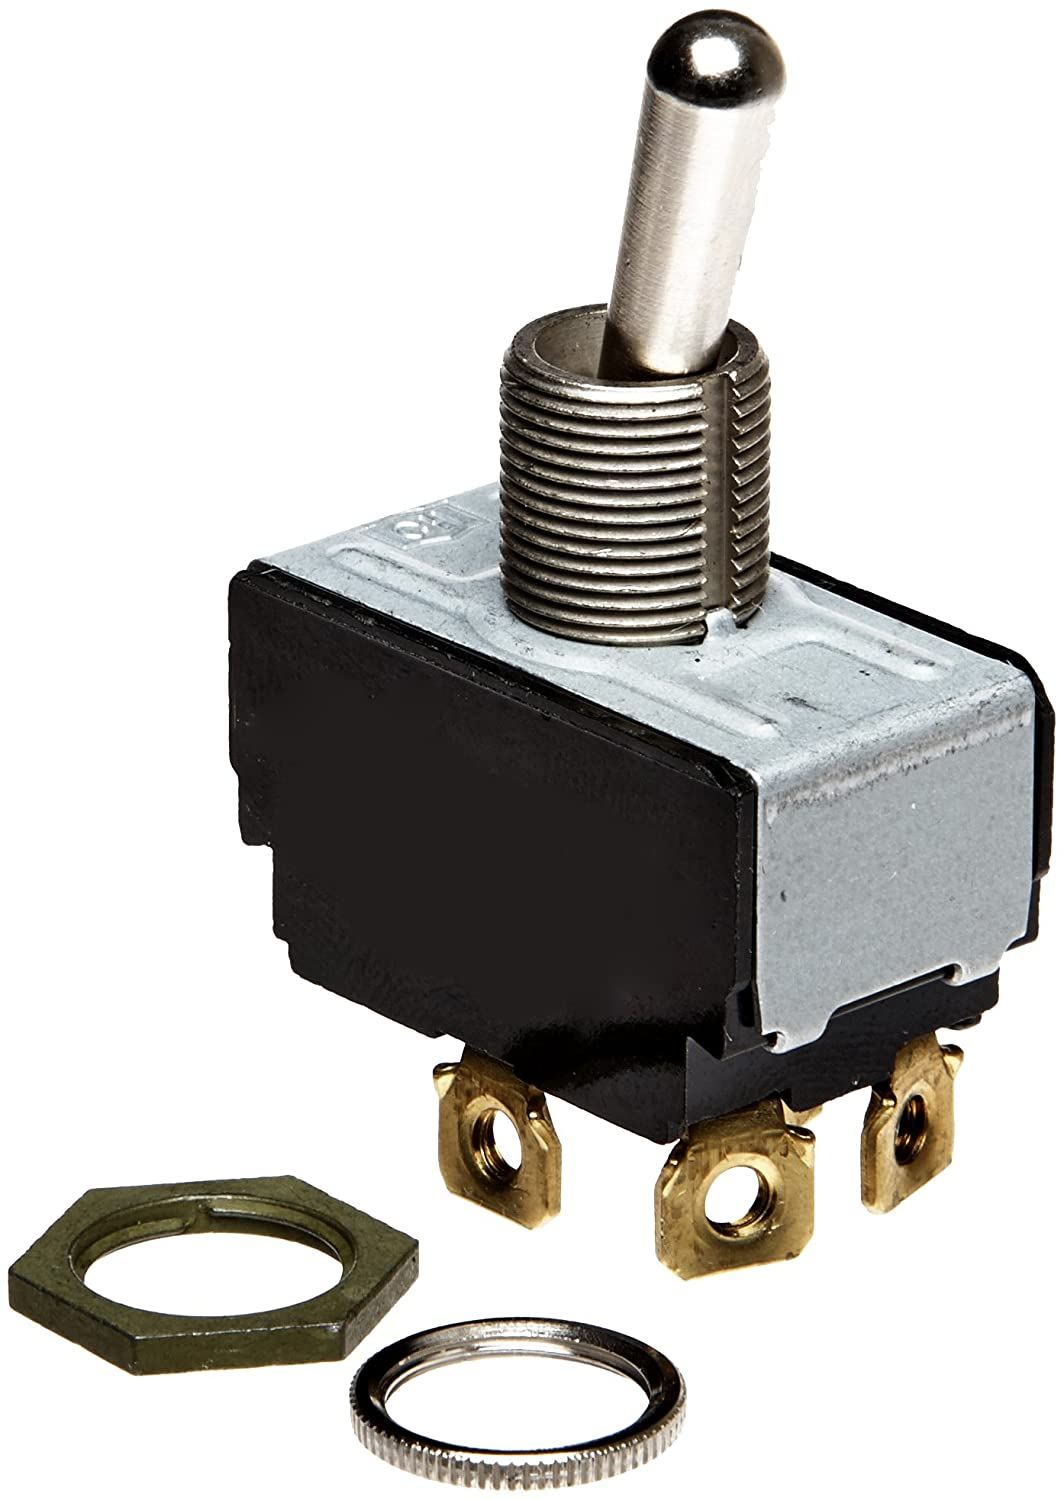 Eaton 7803K31 General Purpose Bat Lever Toggle Switch, AC Rated, Screw Termination, On-None-Off Action, DPST Contacts